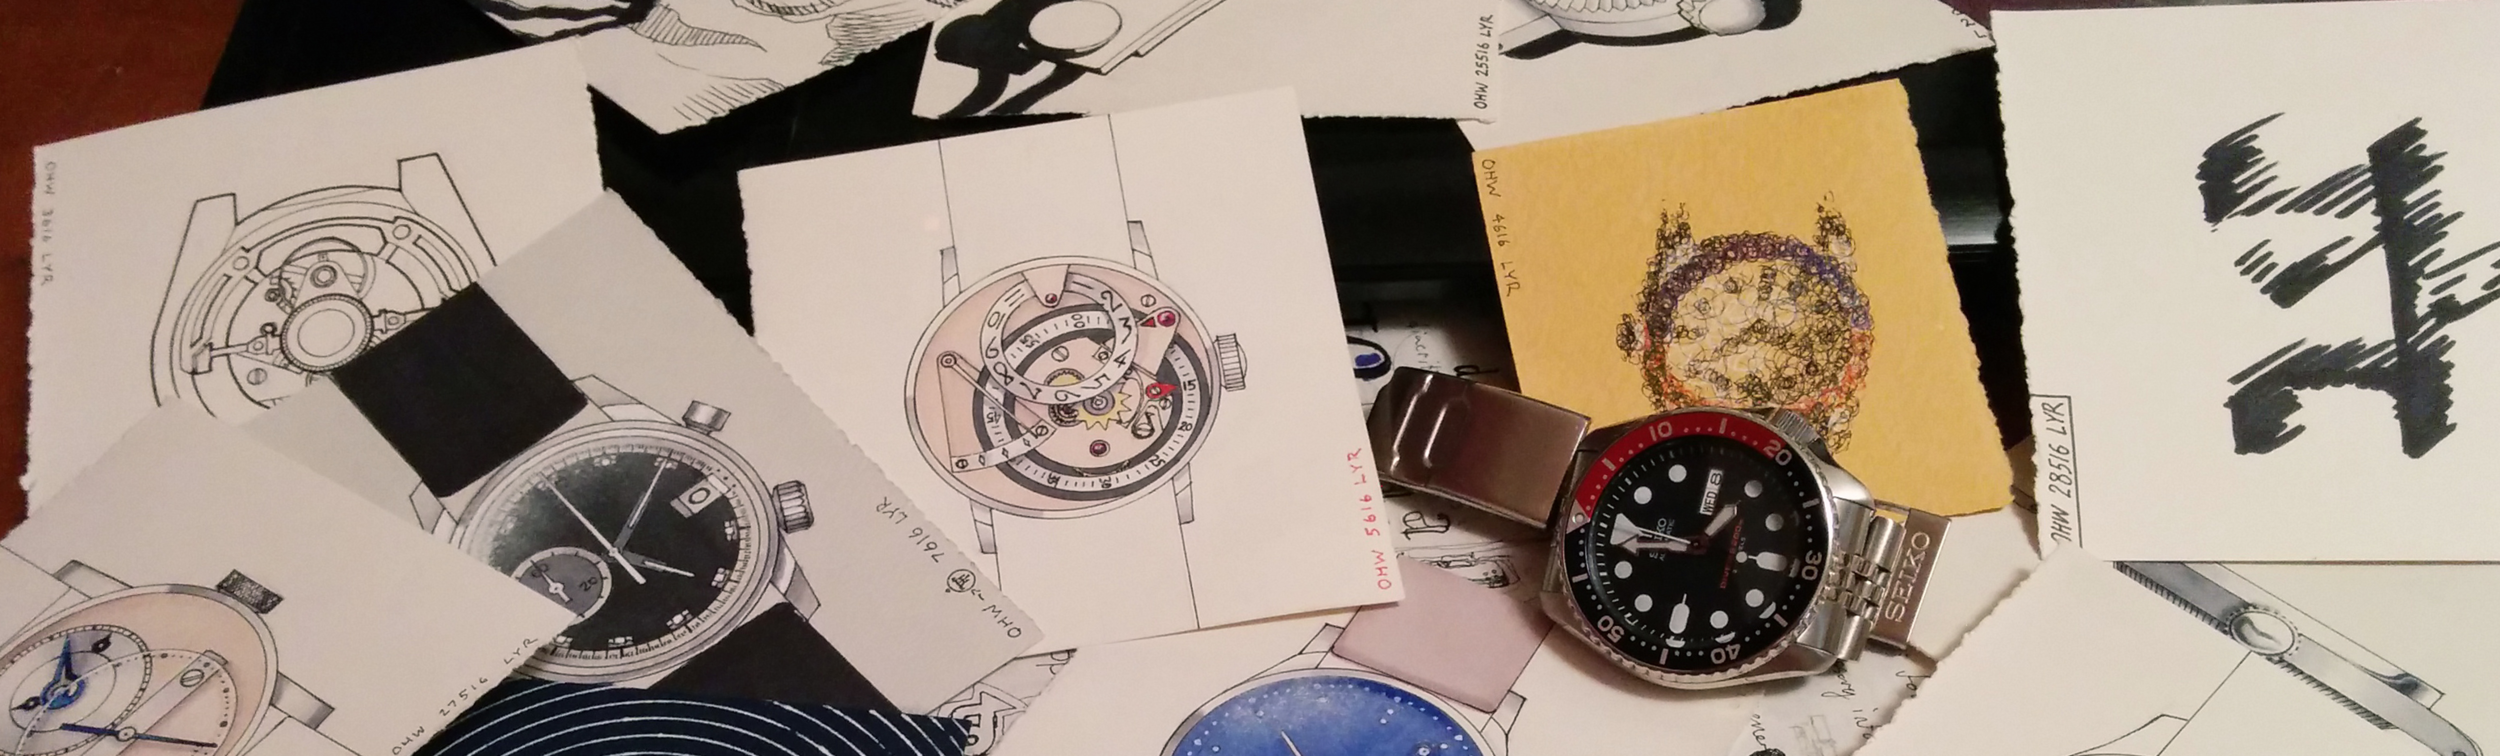 Lee's designs with his Seiko SKX009